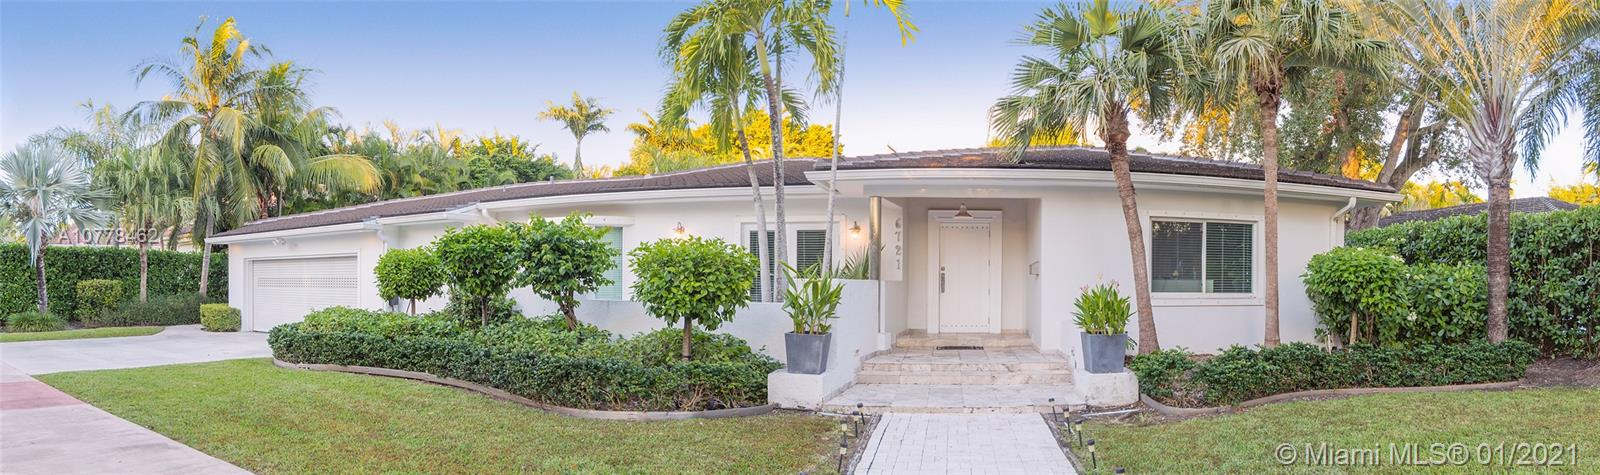 South Miami - 6721 Riviera Dr, Coral Gables, FL 33146